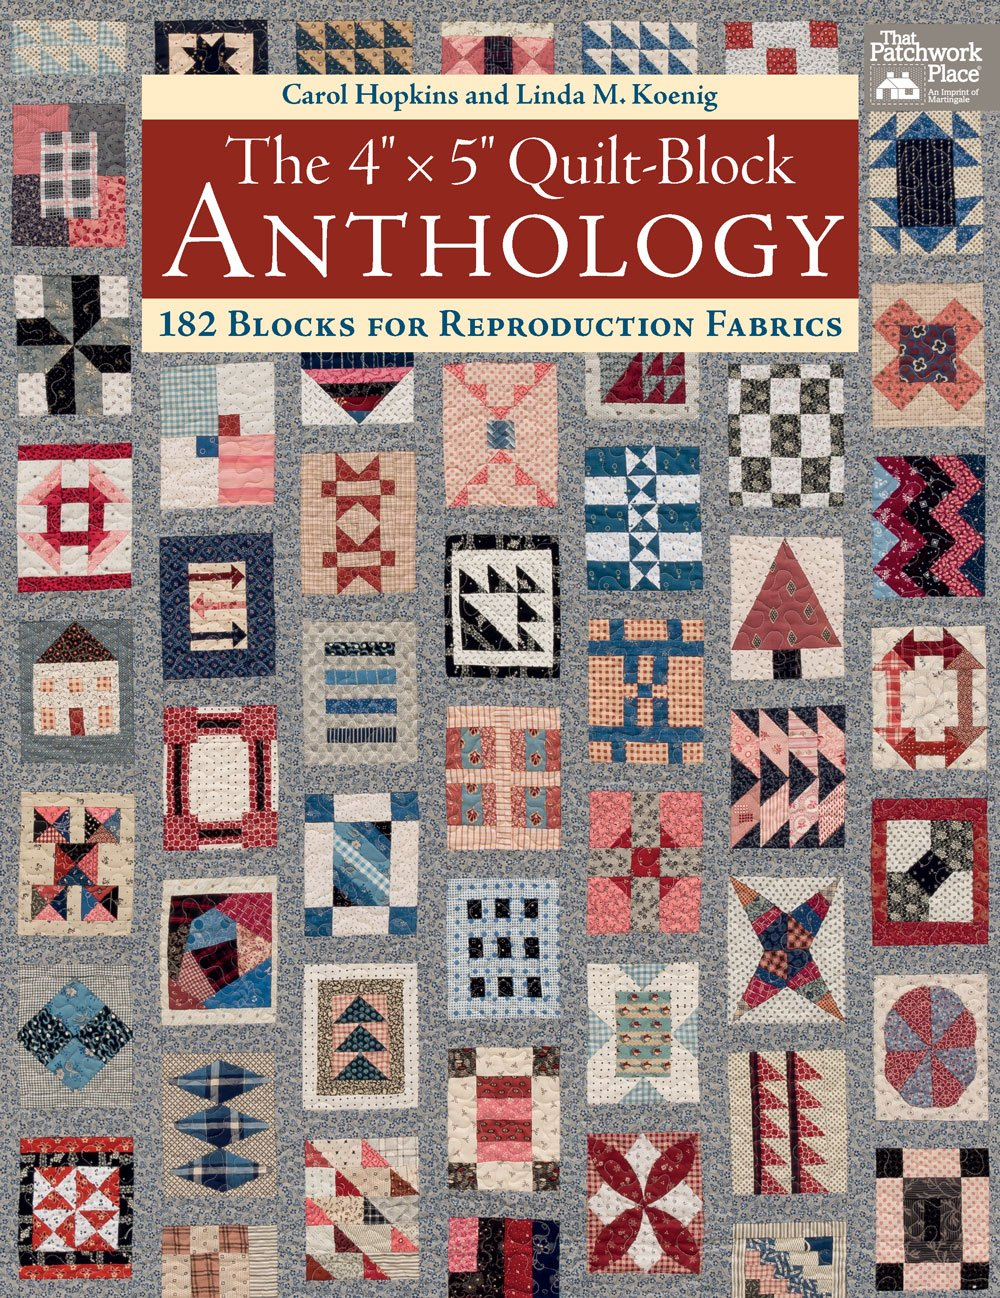 The 4 x 5 Quilt Block Anthology